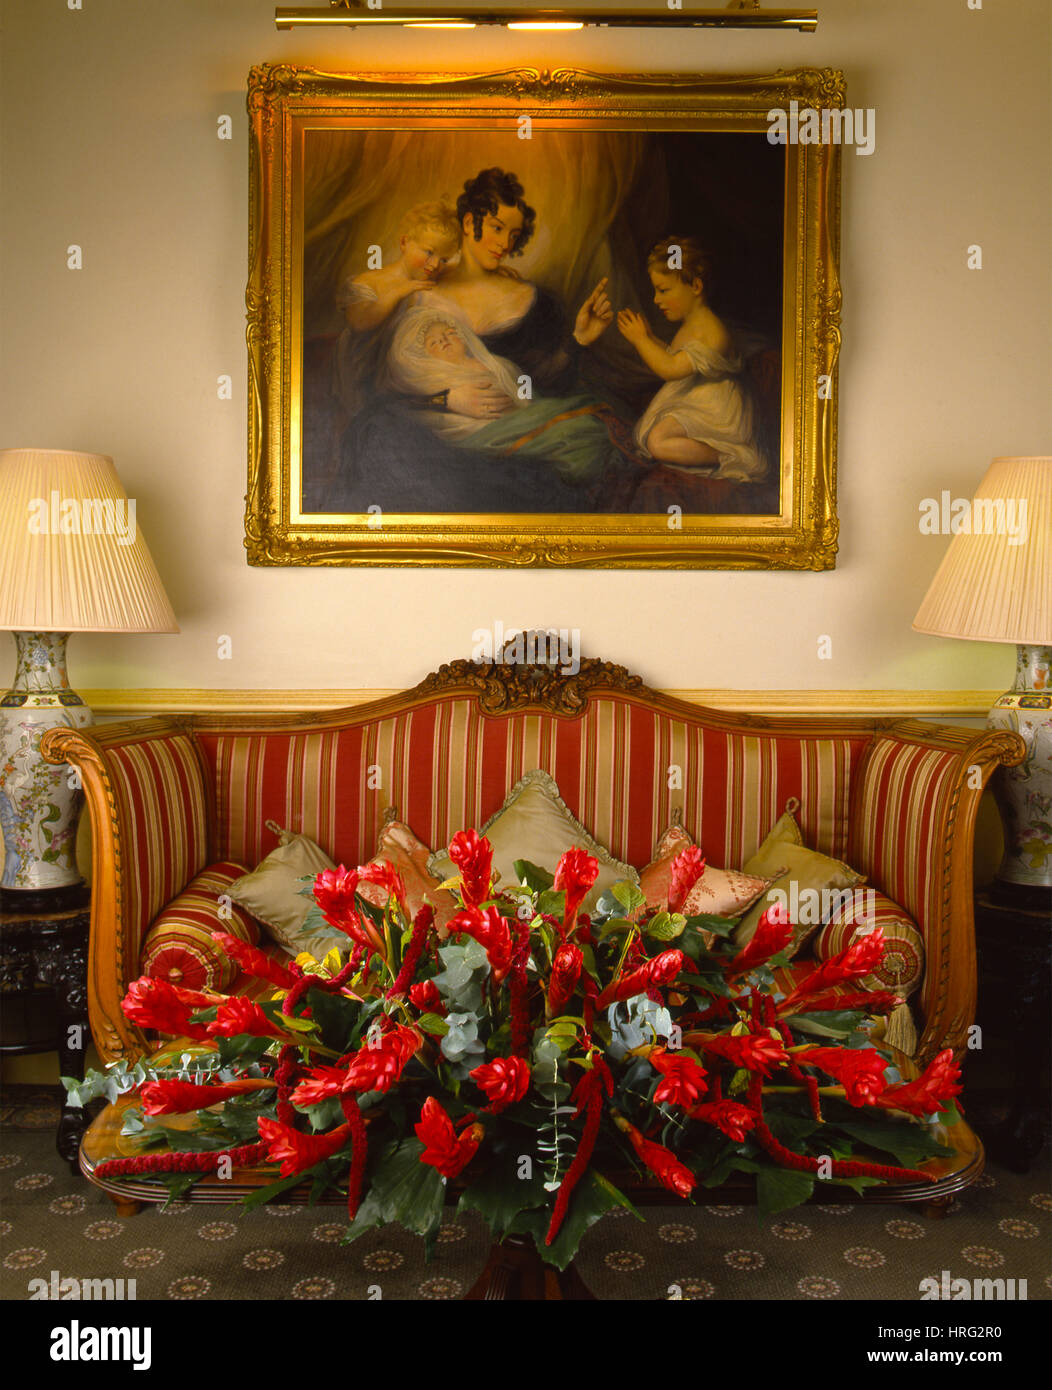 Classic furnishings with a flower arrangement of Crimson trails of furry Amaranthus and bromeliad, mixed with eucalyptus - Stock Image